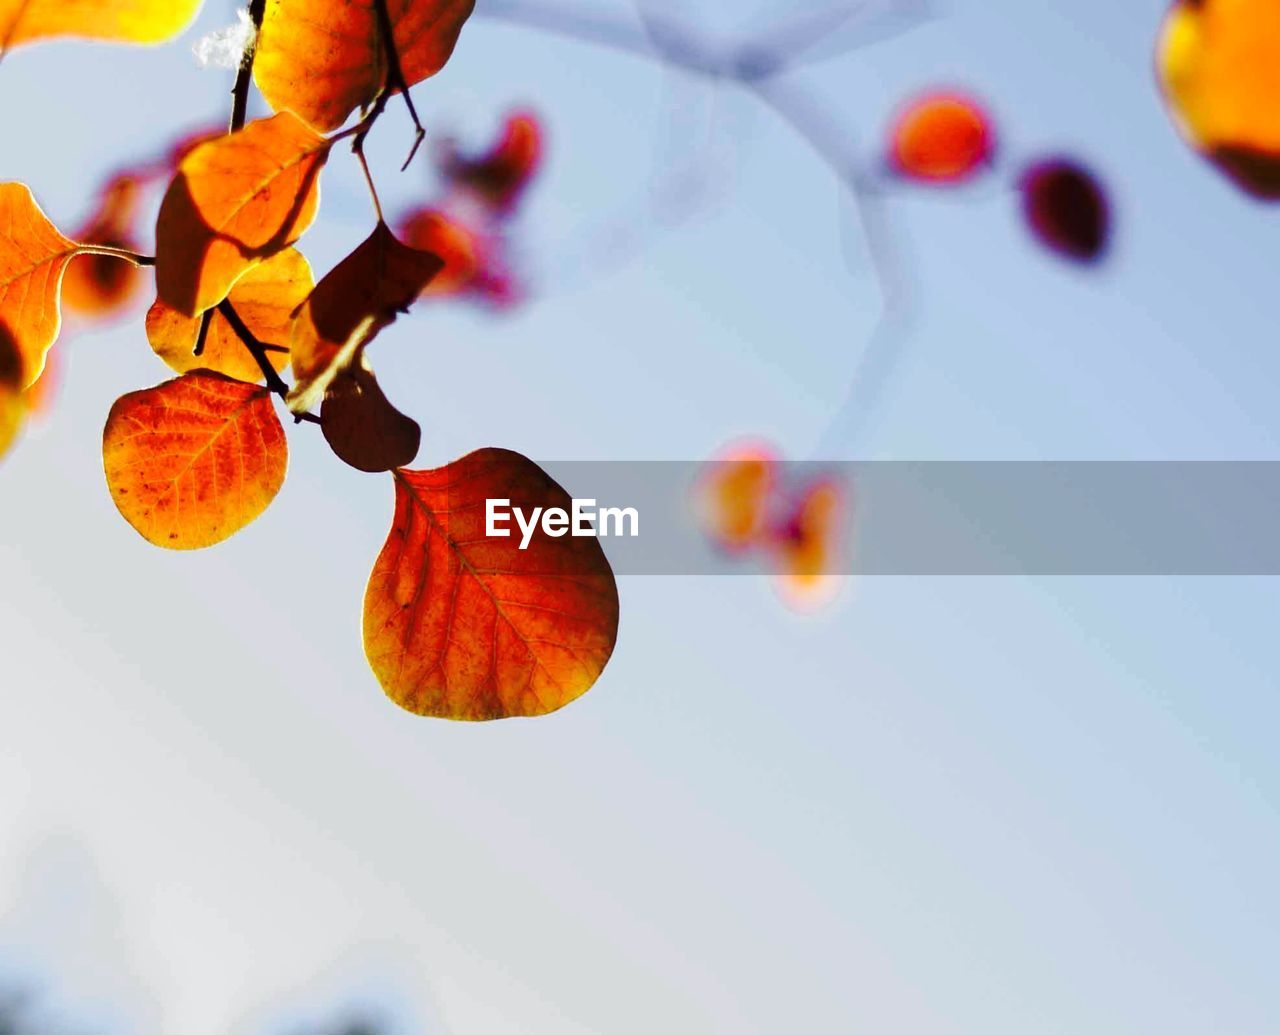 Low angle view of tree leaves against sky during autumn